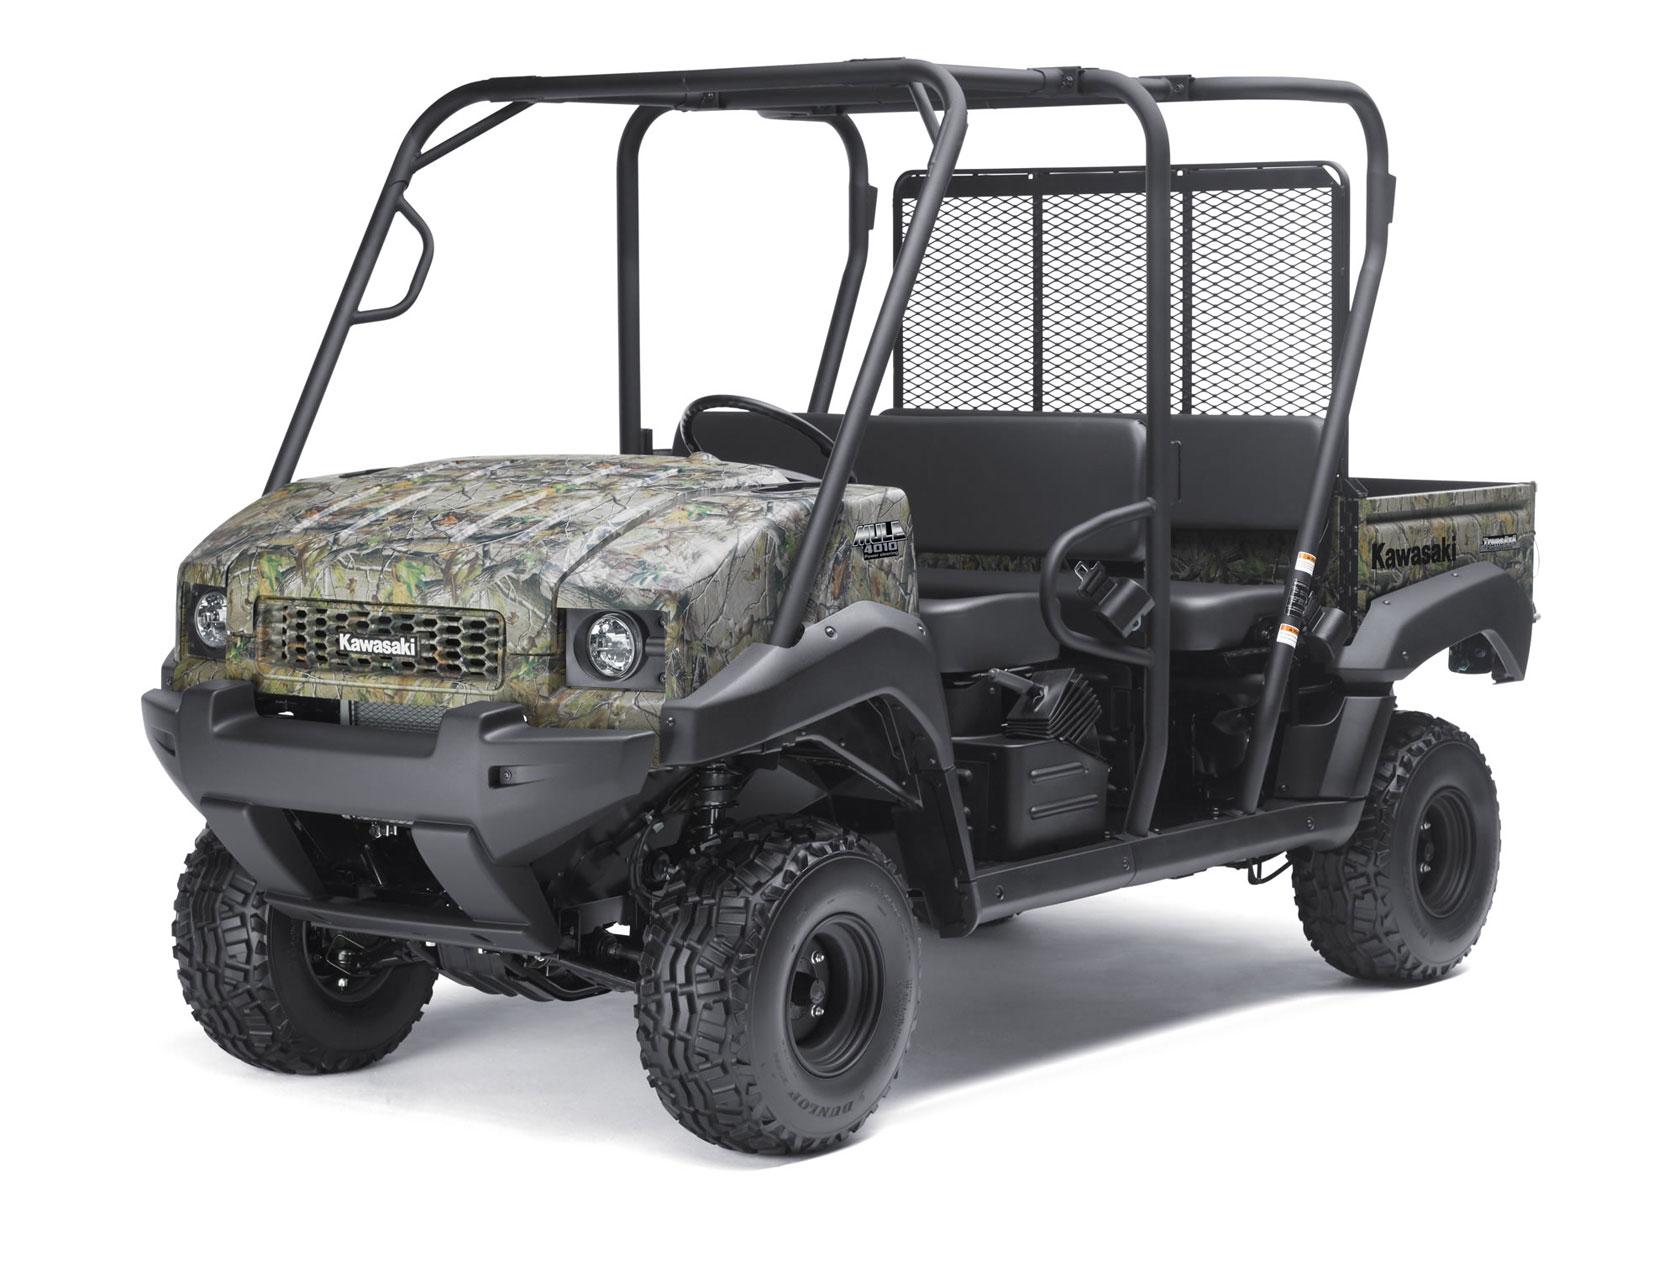 Kawasaki Mule Trans X Accessories